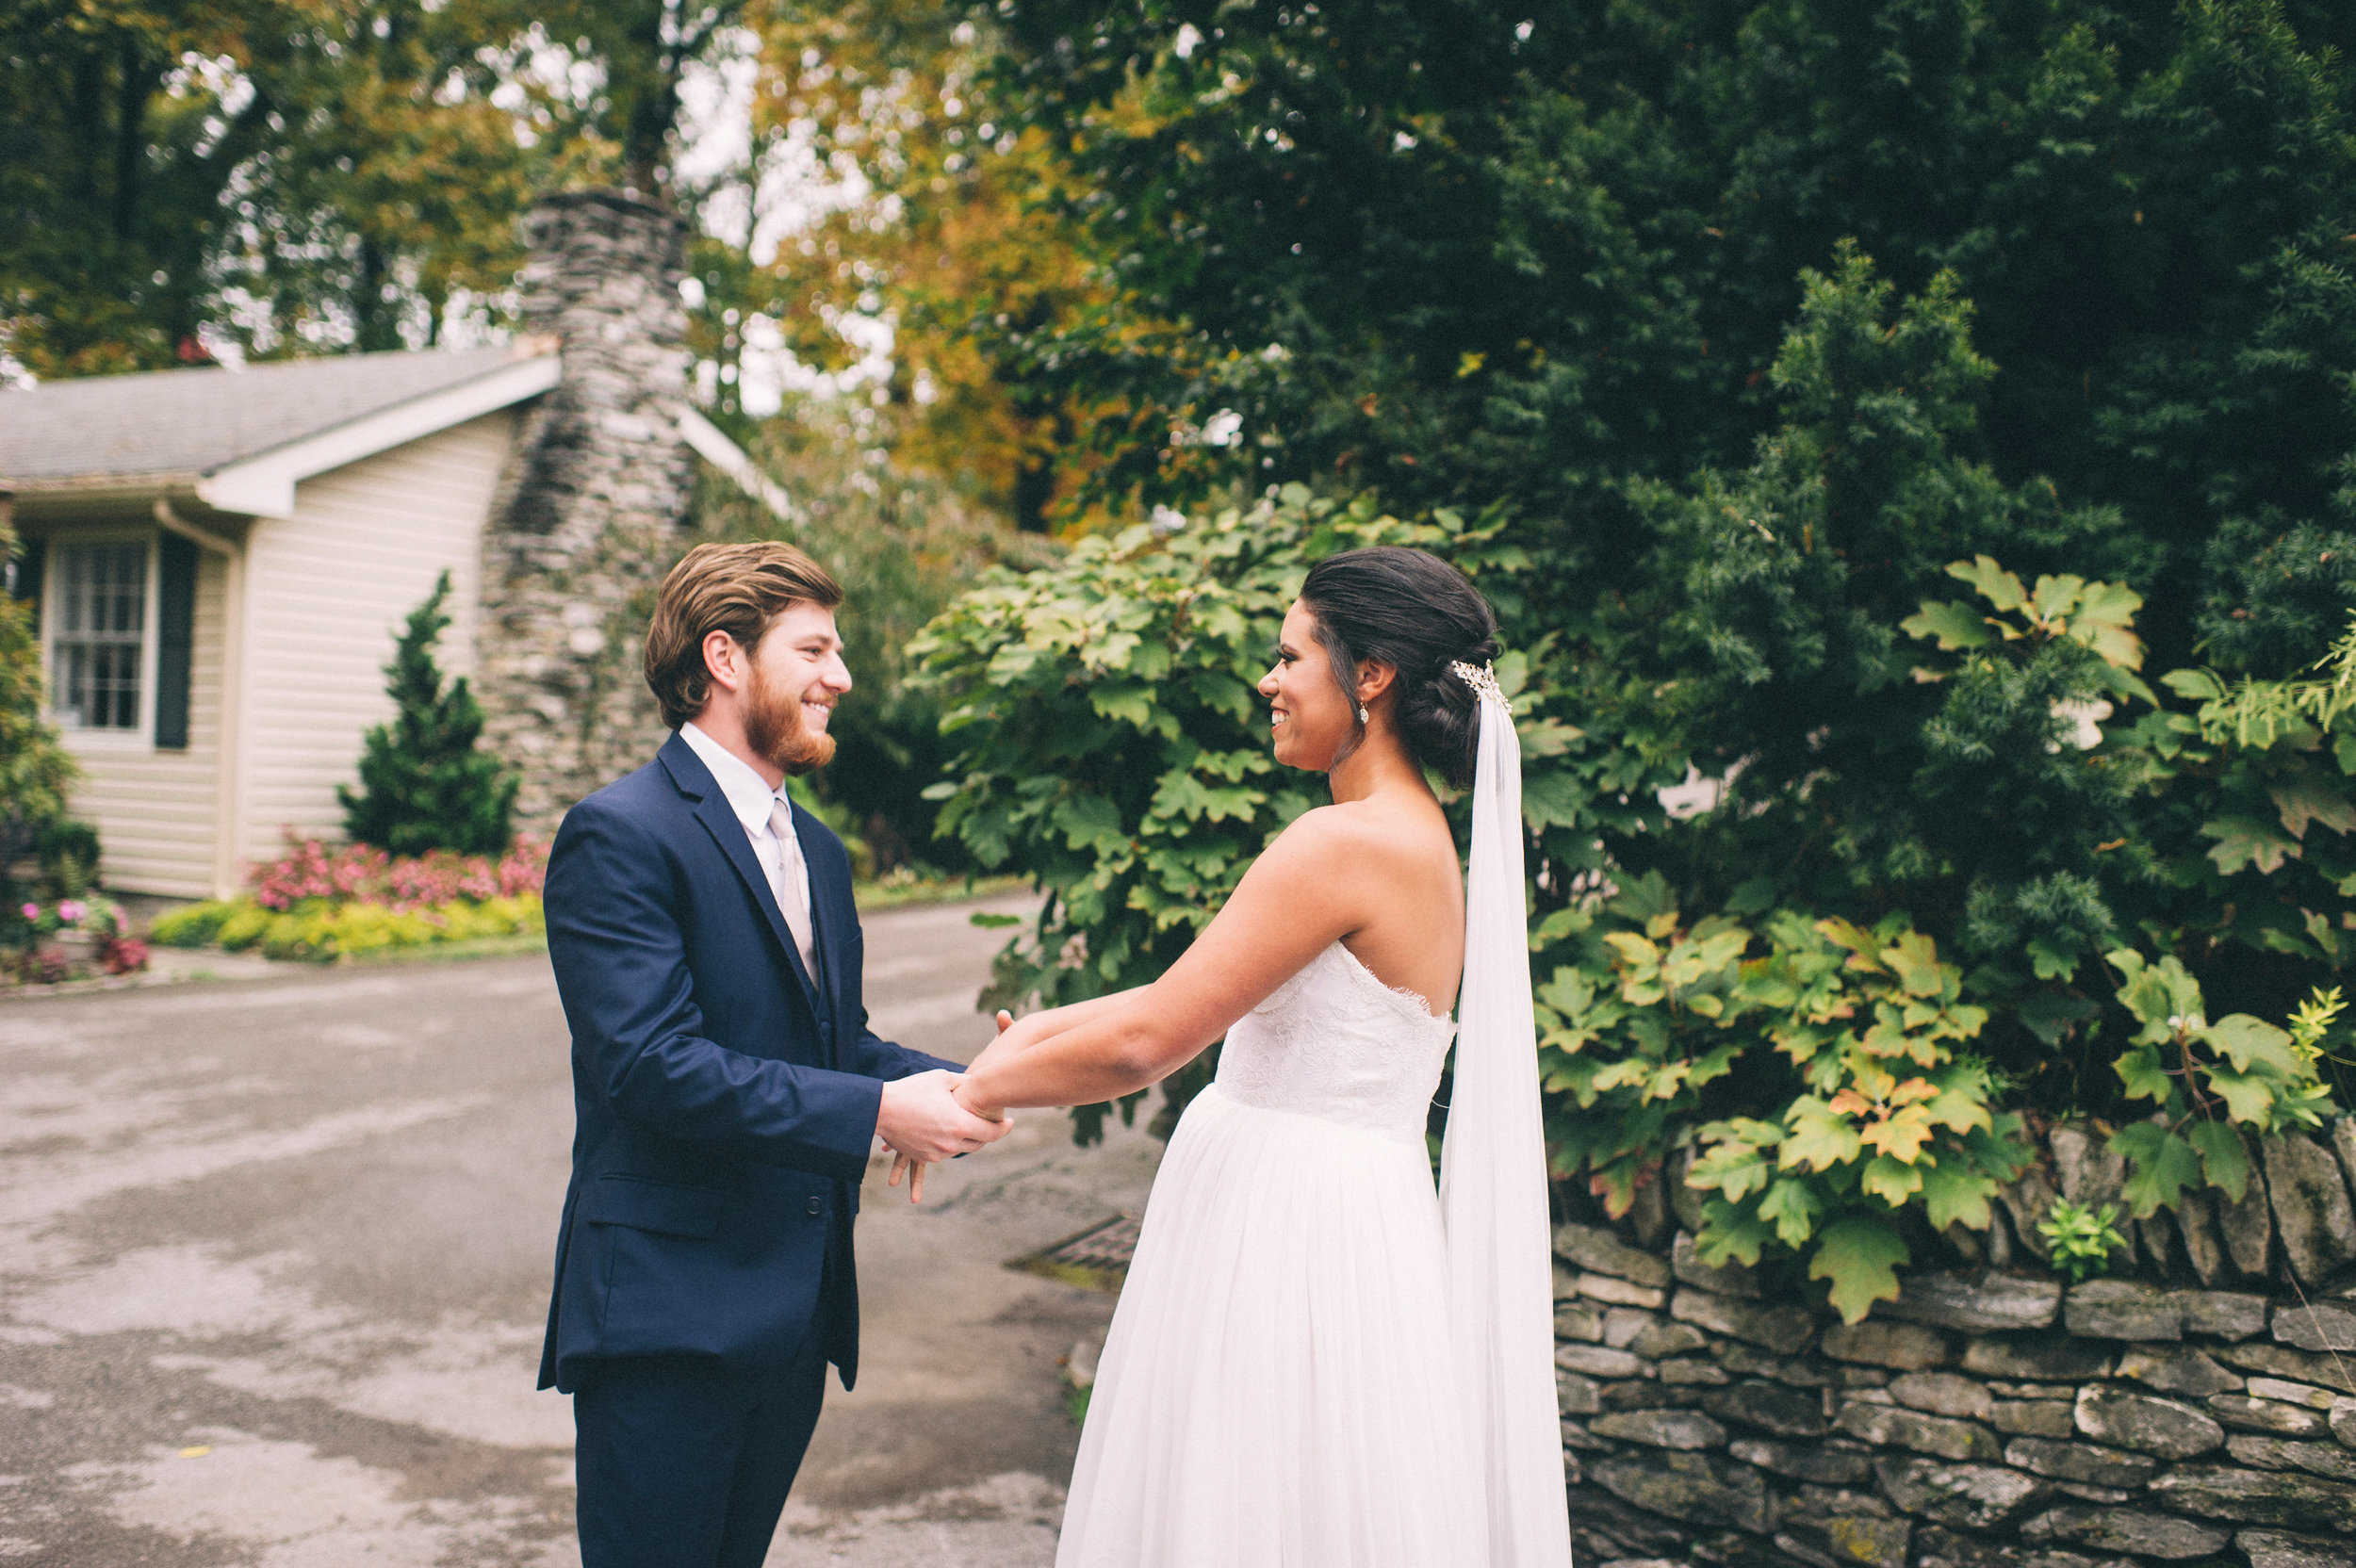 Micaha & Austin // Cozy Autumn Wedding at Springhouse Gardens // Lexington, Kentucky // Wedding Photography // First Look